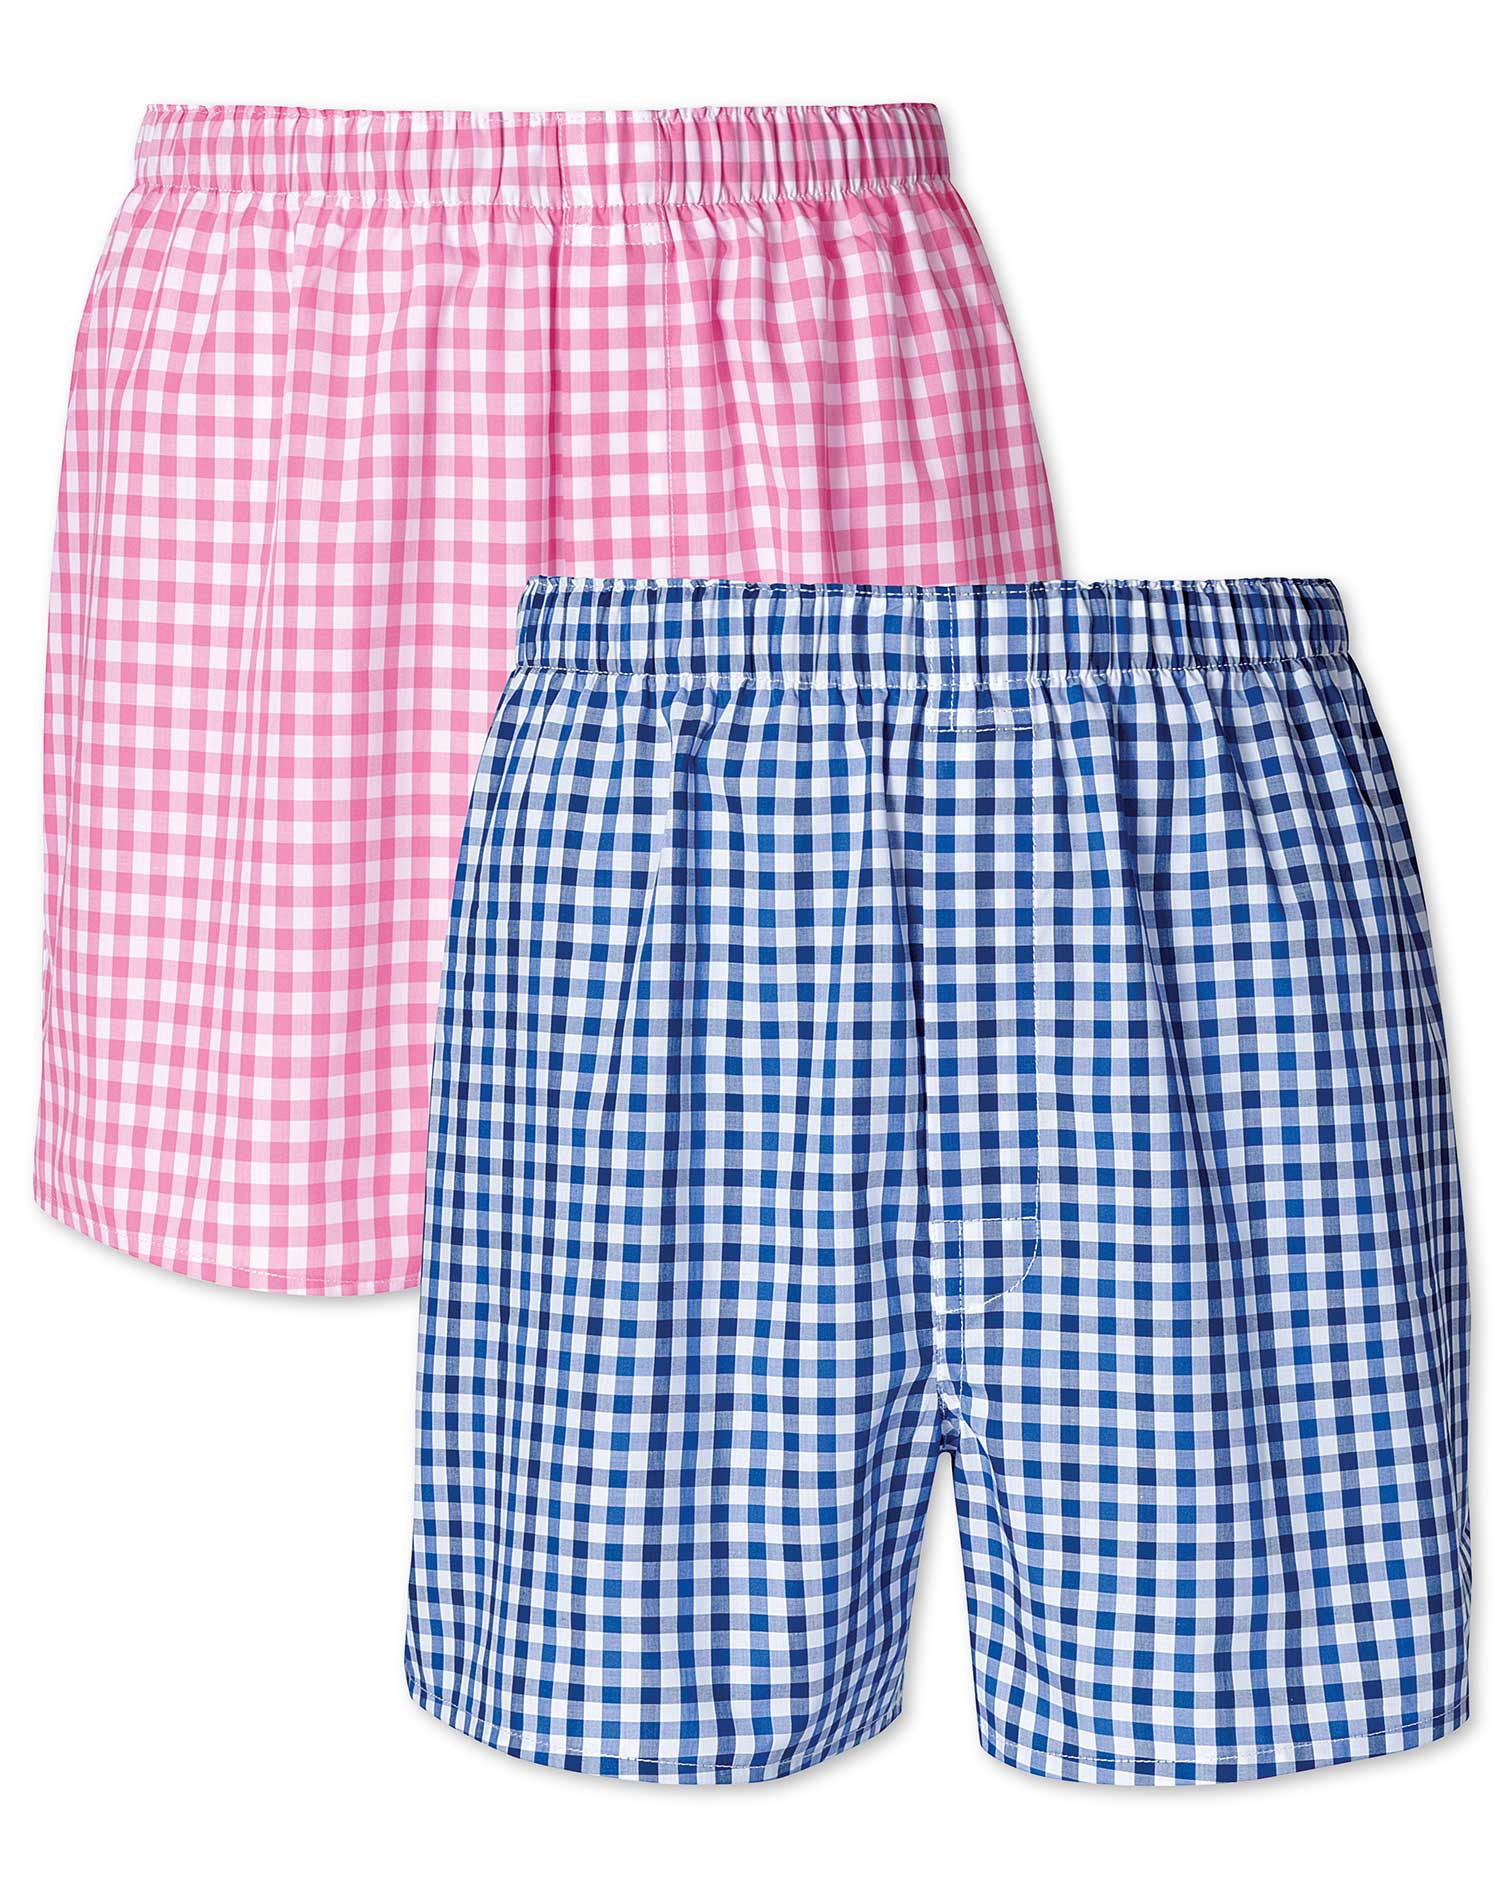 Pink and Blue Gingham 2 Pack Boxers Size Small by Charles Tyrwhitt